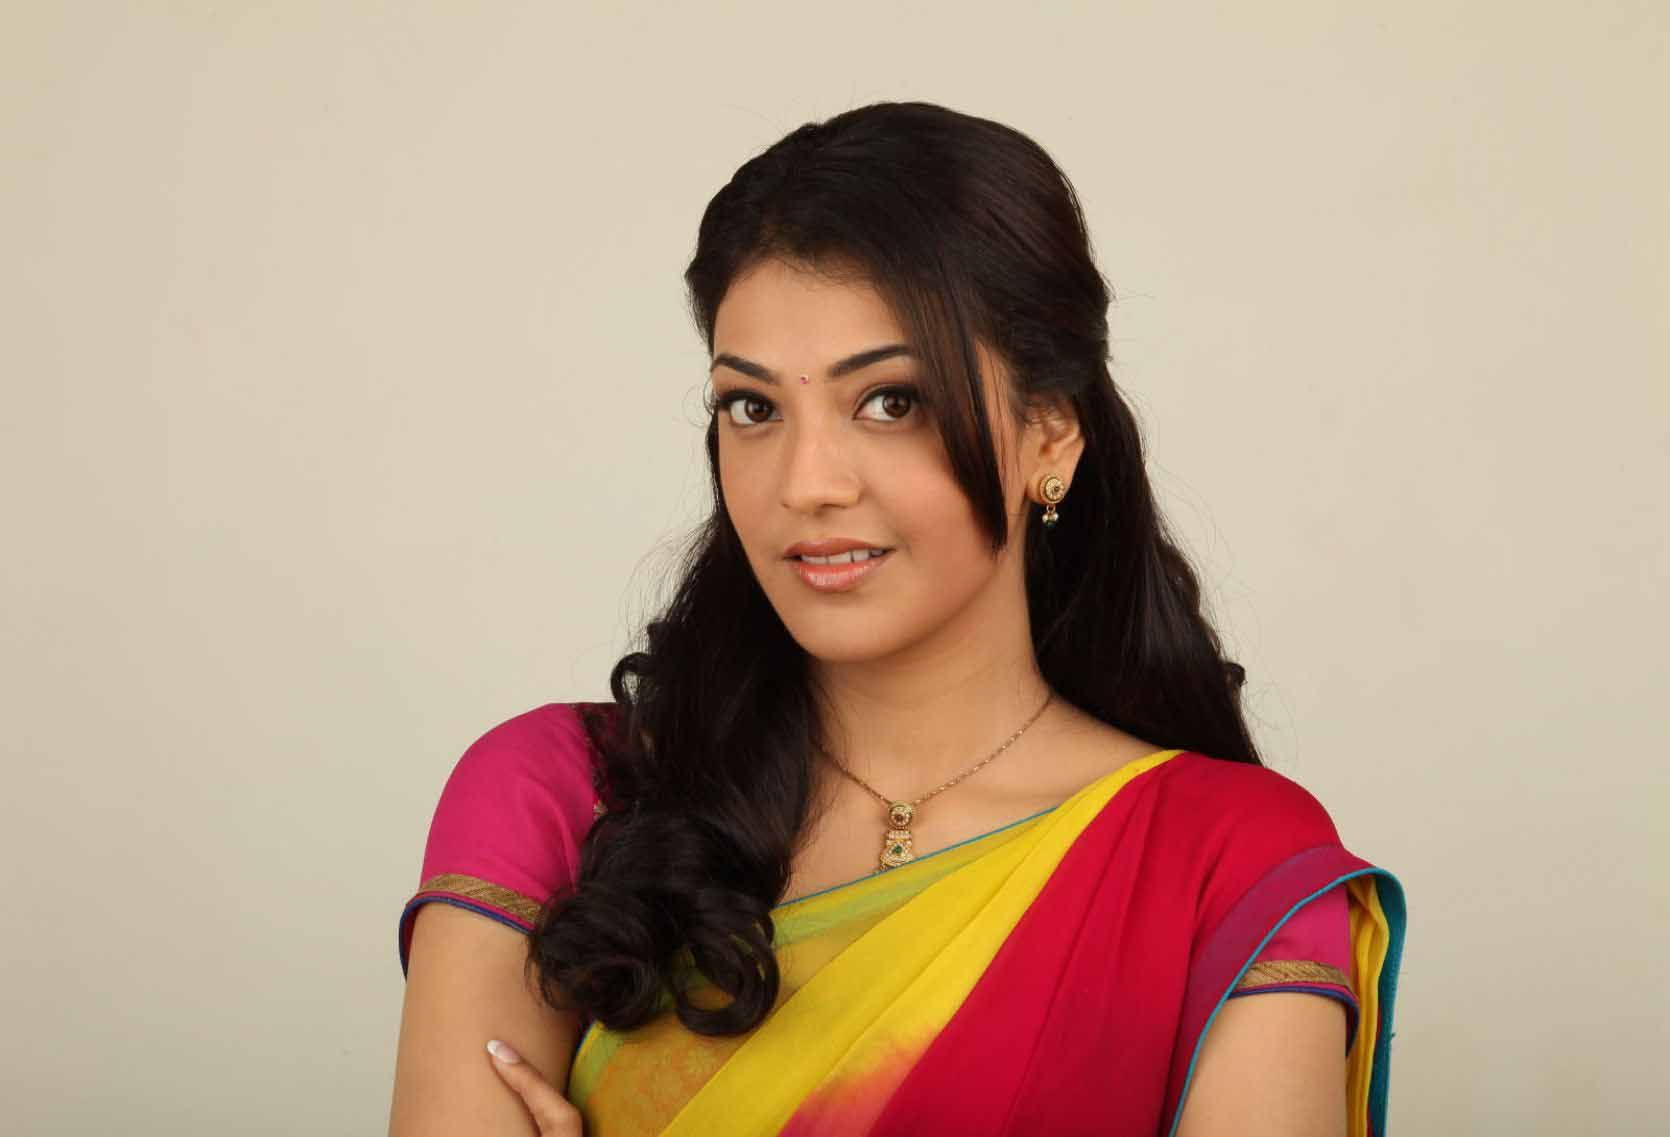 Wallpaper download kajal agarwal - Nice Kajal Aggarwal Hd Images Spicy Photos Wallpapers Free Download